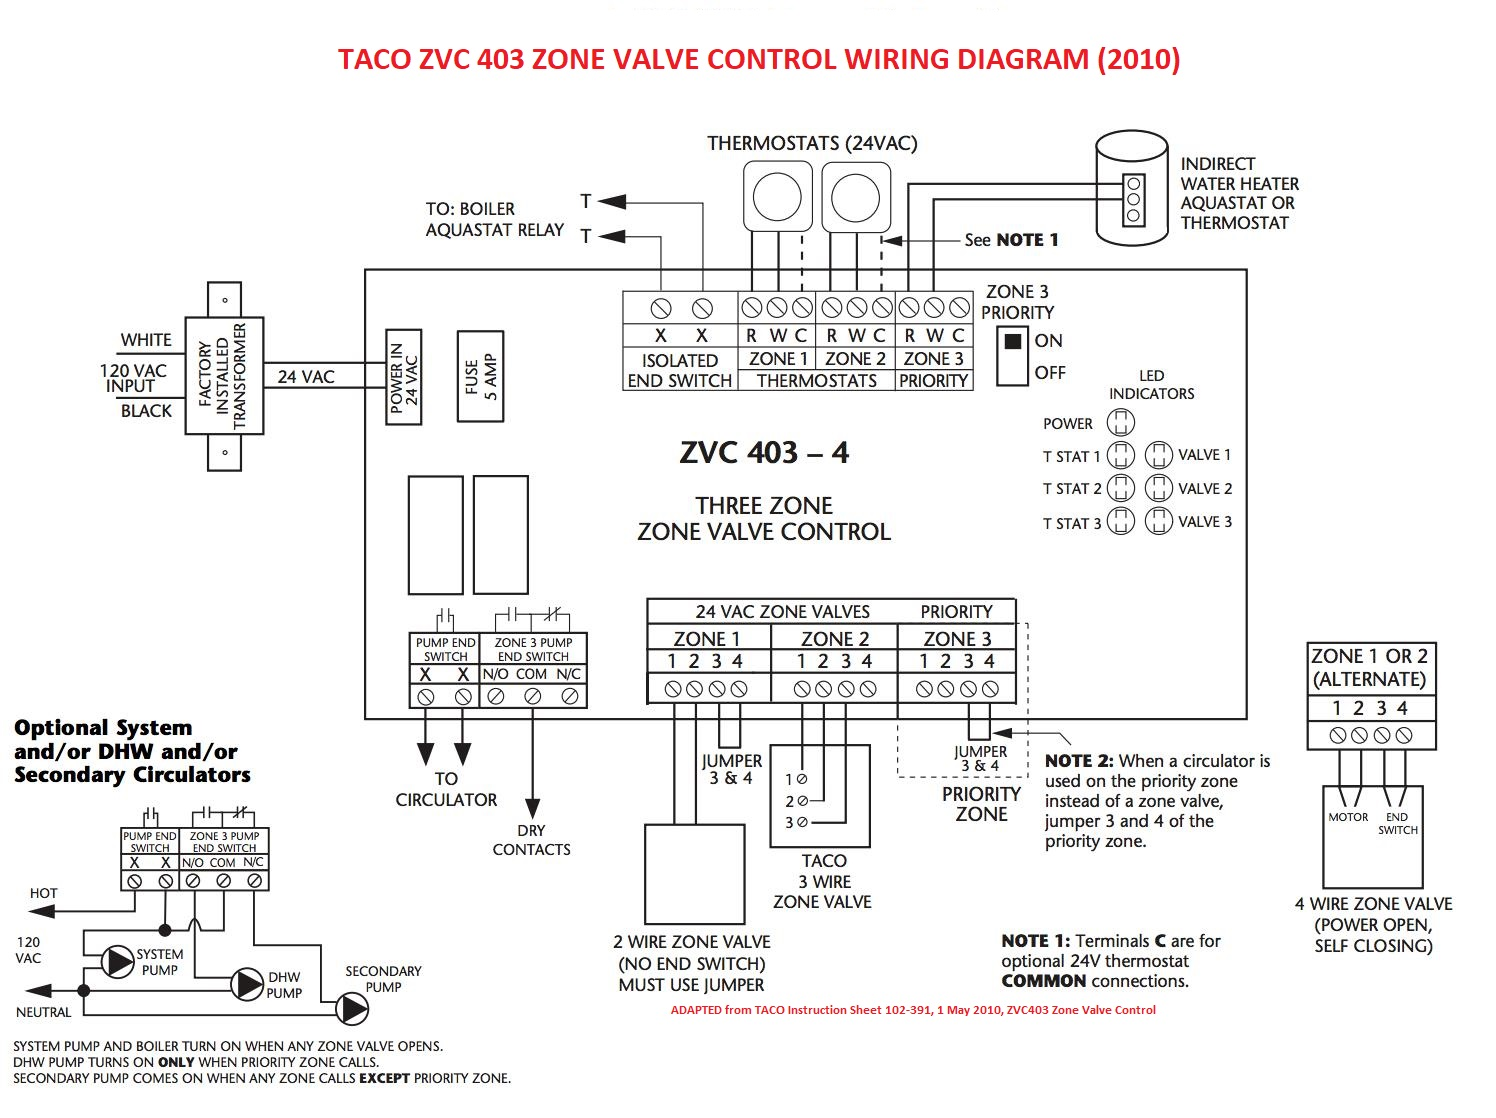 Zone Valve Wiring Installation Instructions Guide To Heating Diagram On 12 Volt For Solar Panel System Taci Zvc493 Click Enlarge At